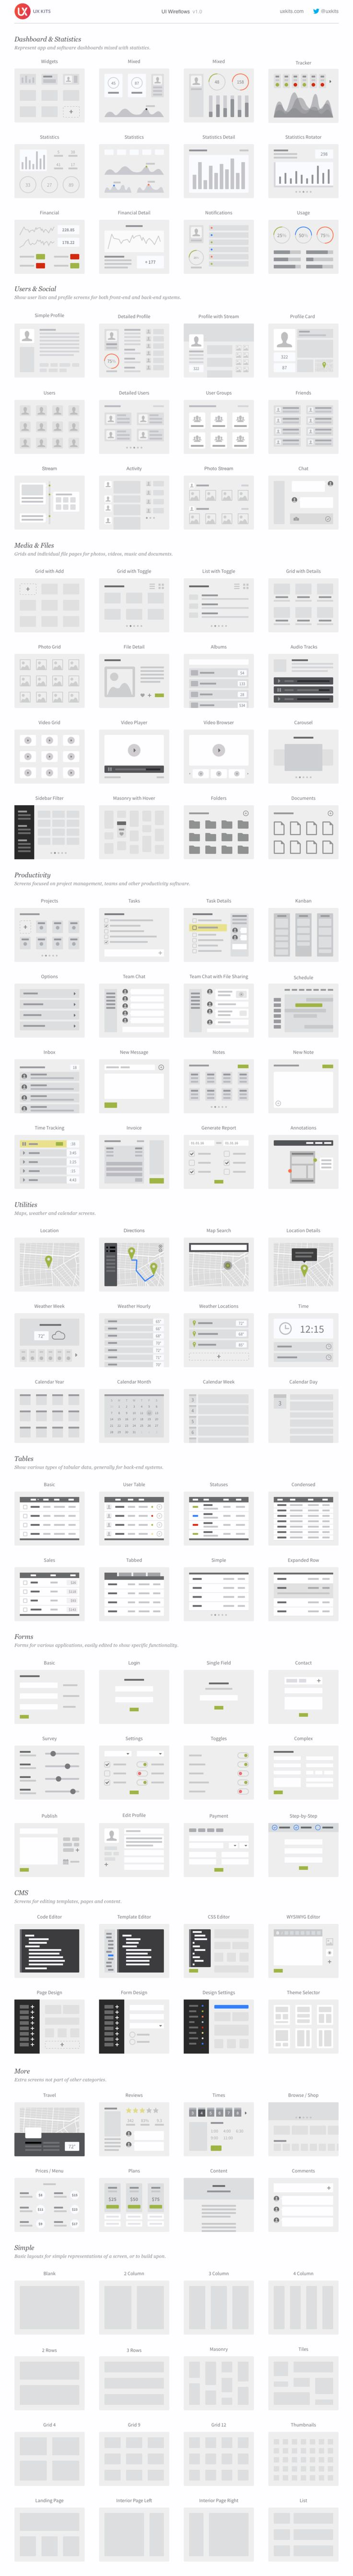 UI Wireflows allow you to show architecture, basic page layout, content and flow in one deliverable. With 120 screens and 100 additional UI and flowchart elements, the Kit blends flowcharts and wireframes to help you clearly communicate the functionality of a product to clients and team members.  UI Wireflows was designed with web-based, desktop and tablet software in mind, including miniature wireframes for common types of applications in 10 categories. The additional elements allow you to…